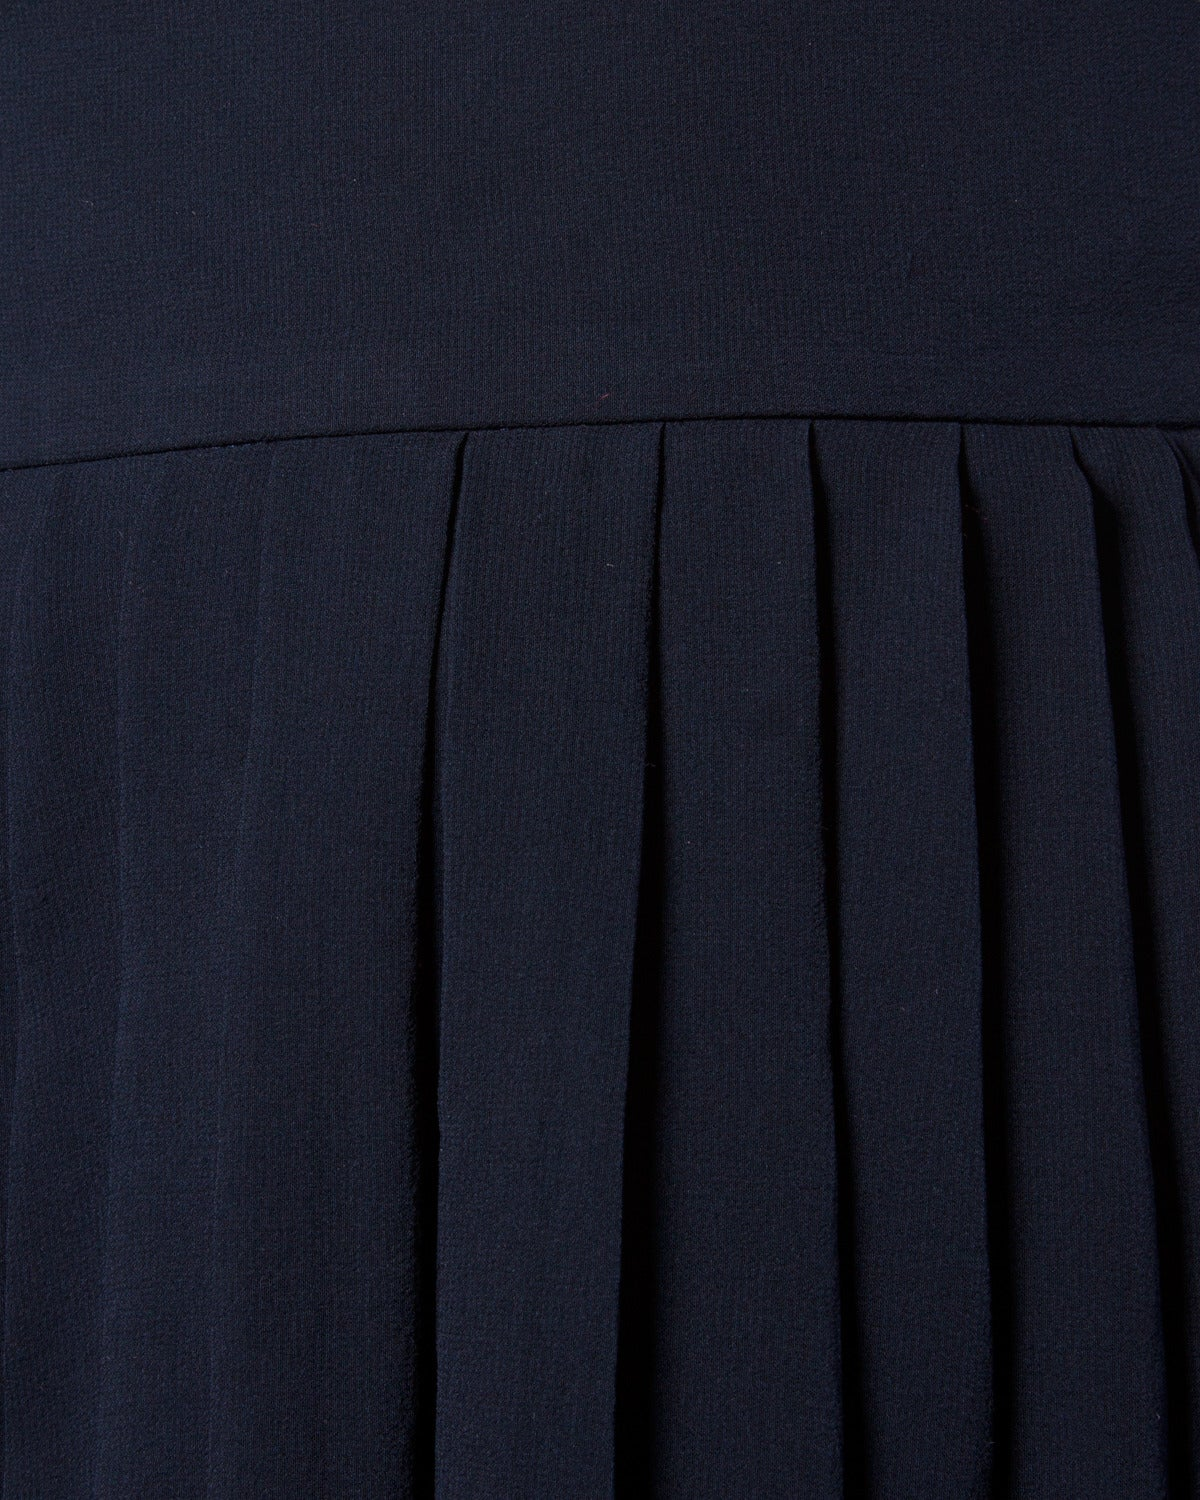 Chanel Vintage Navy Blue Pleated Silk Chiffon Skirt 4